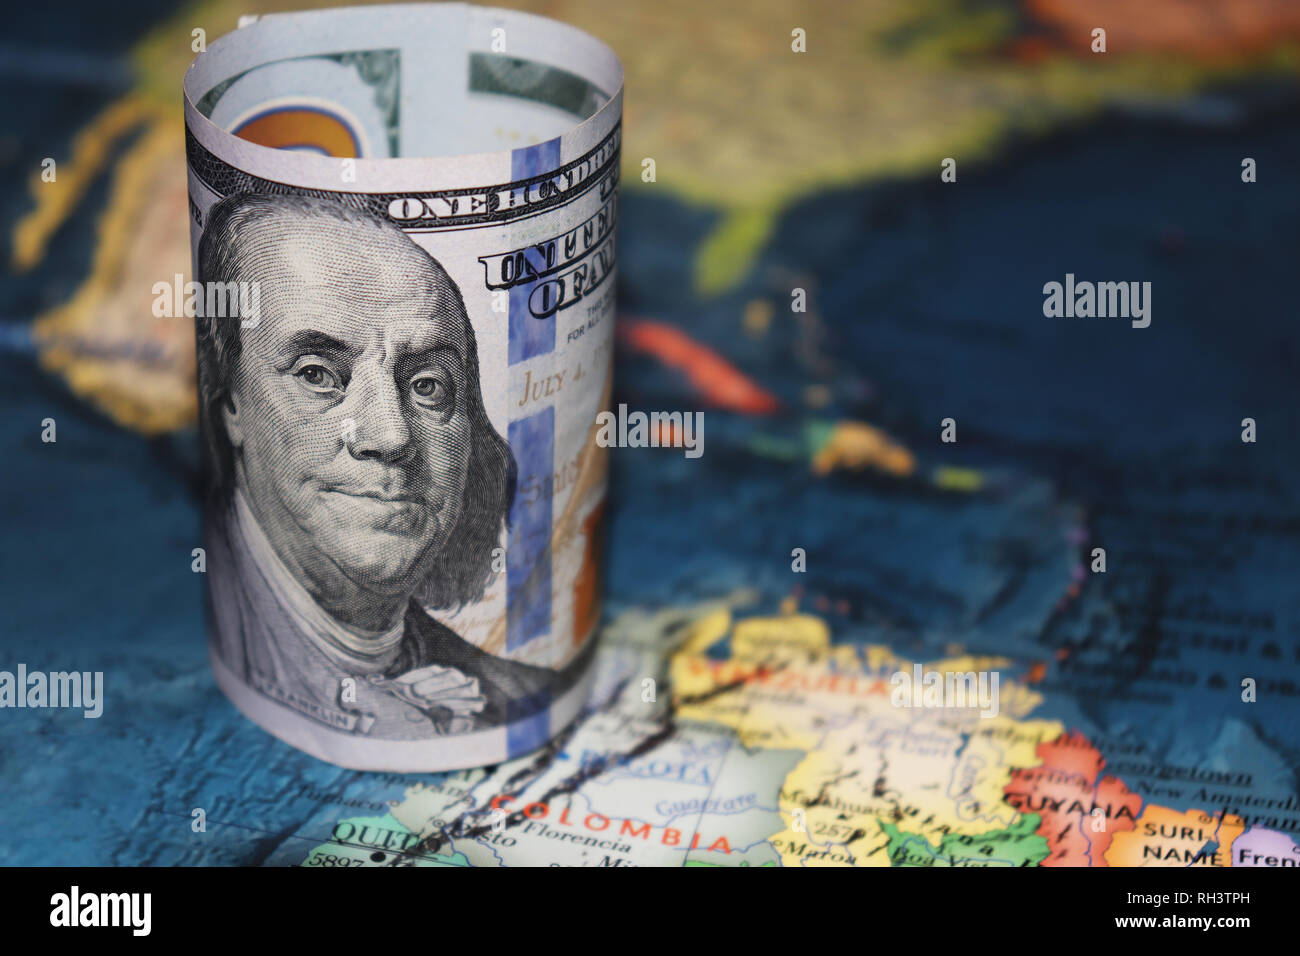 US dollar on the map of Latin America. Concept of political crisis in Venezuela, american influence - Stock Image